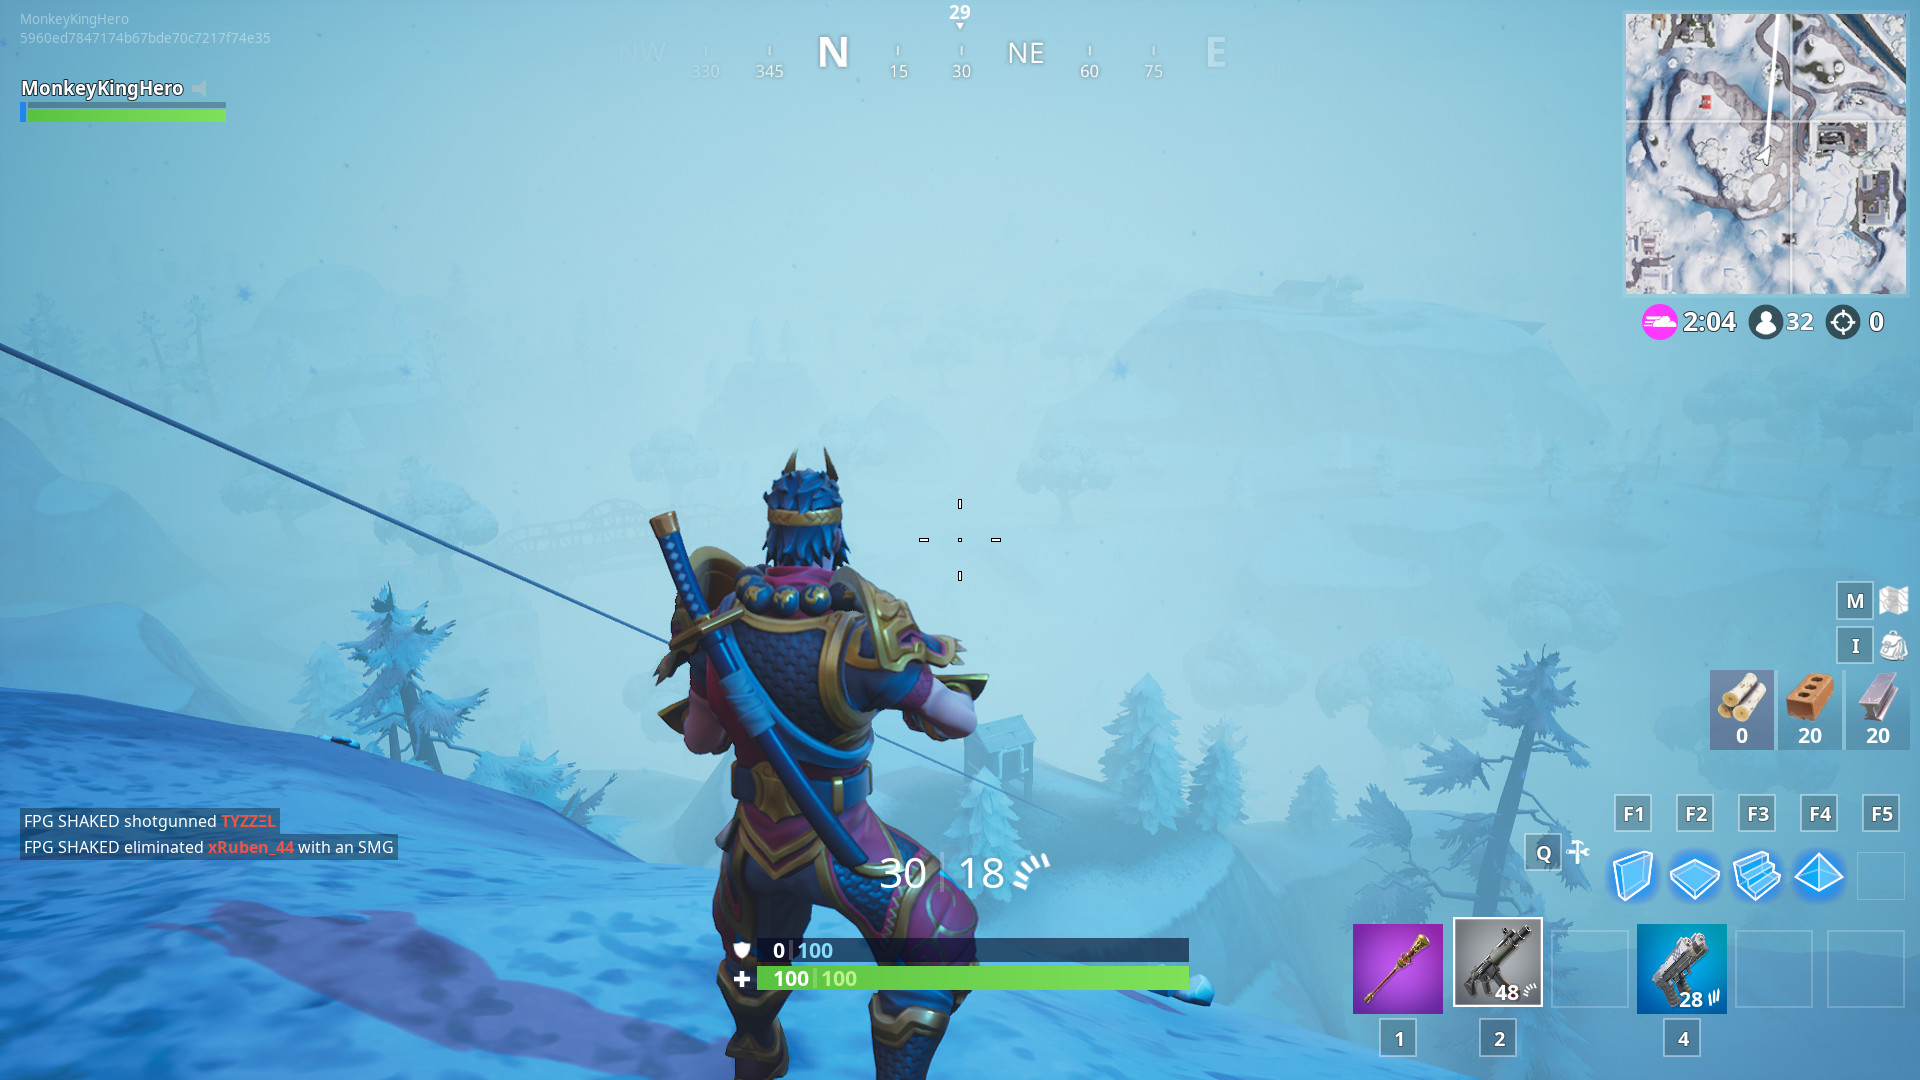 1920x1080 Ice Storm challenges are now available in Fortnite